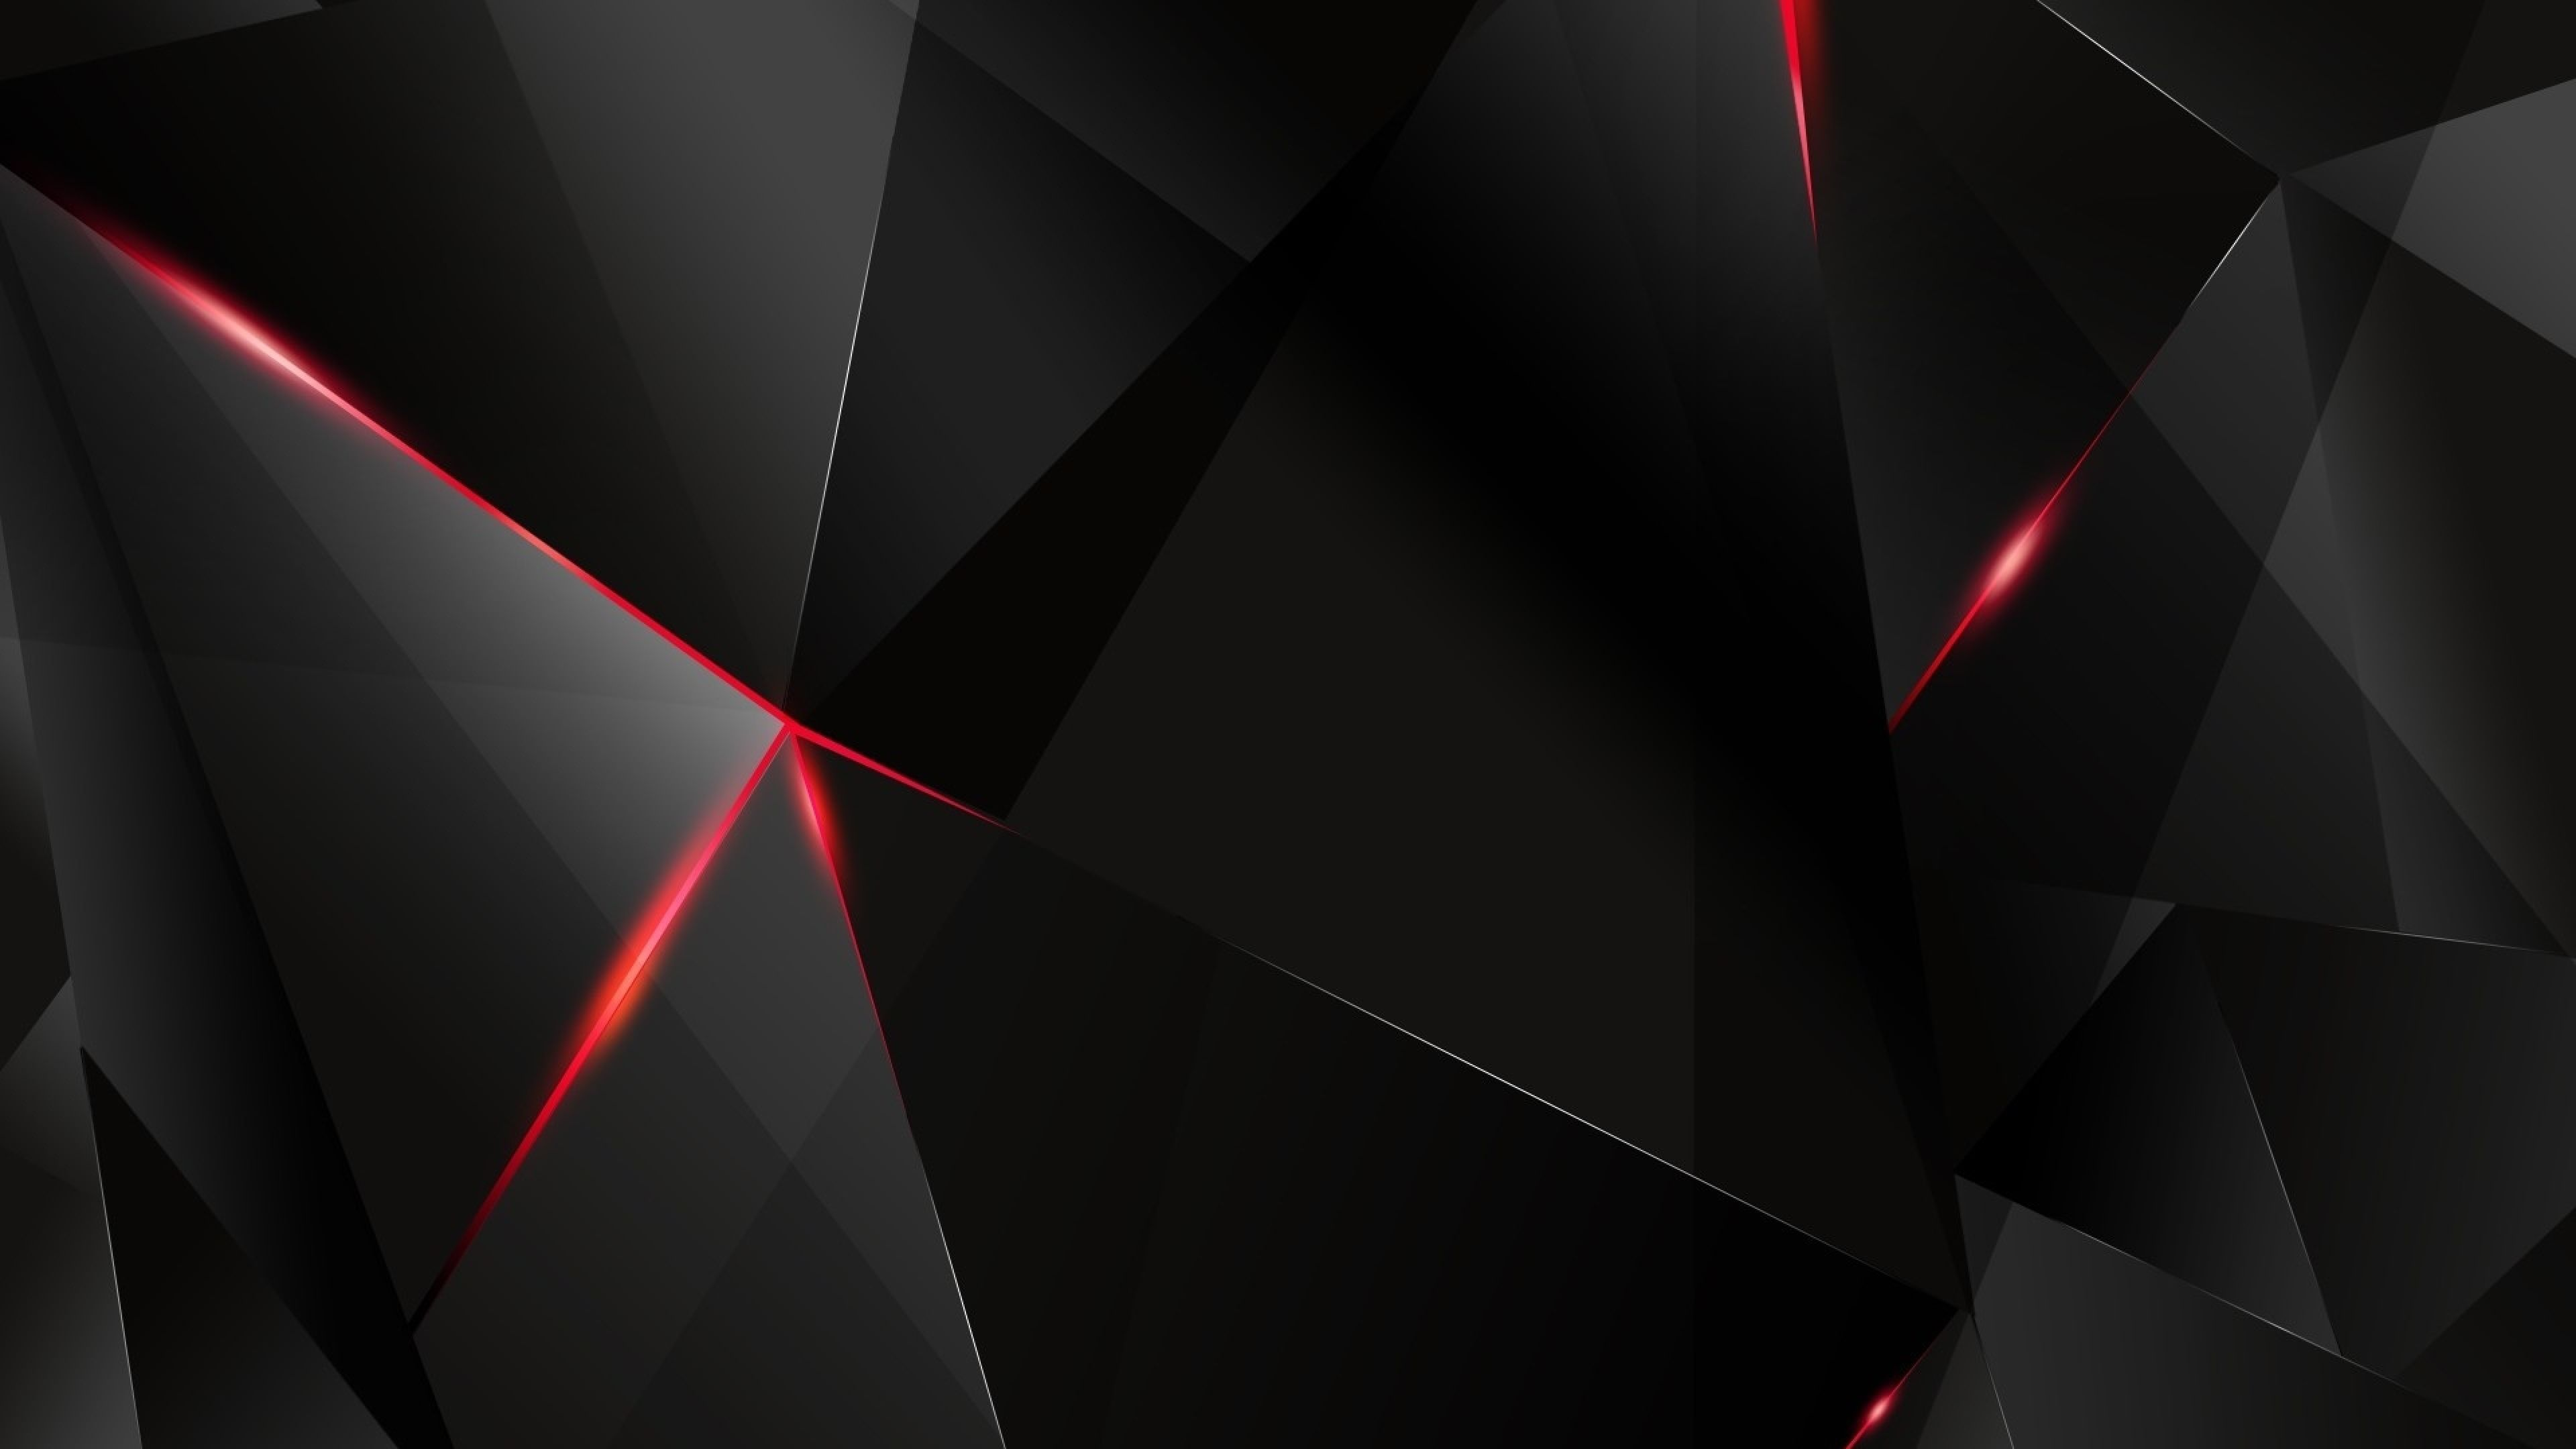 Download Wallpaper 3840x2160 Black Light Dark Figures 4k Ultra Red And Black Wallpaper Dark Black Wallpaper 2048x1152 Wallpapers